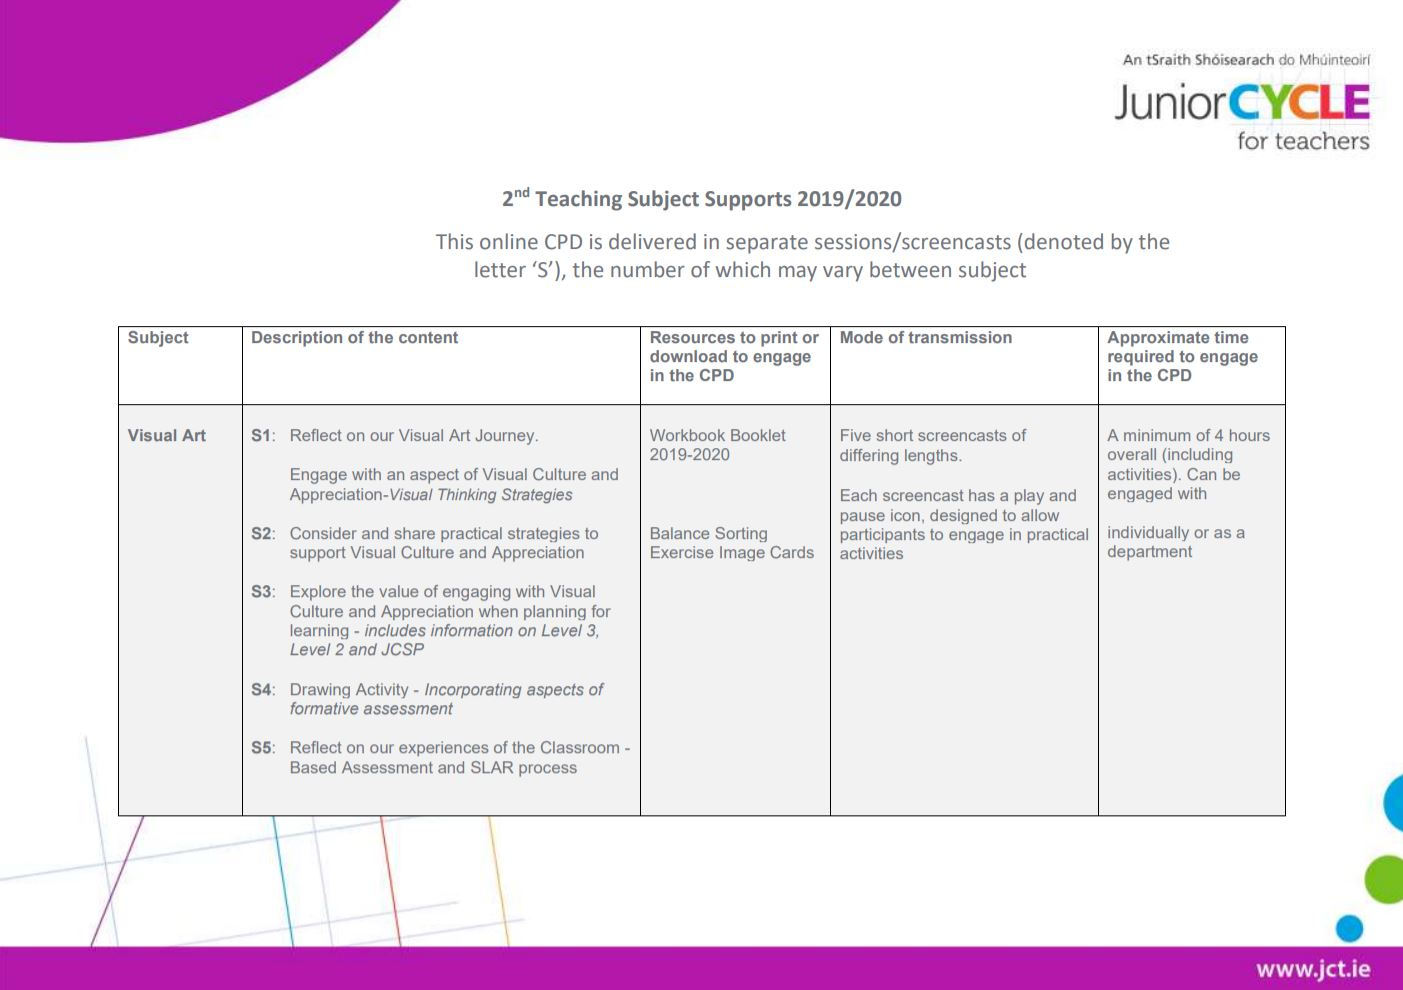 Overview Of Second Subject teaching Supports